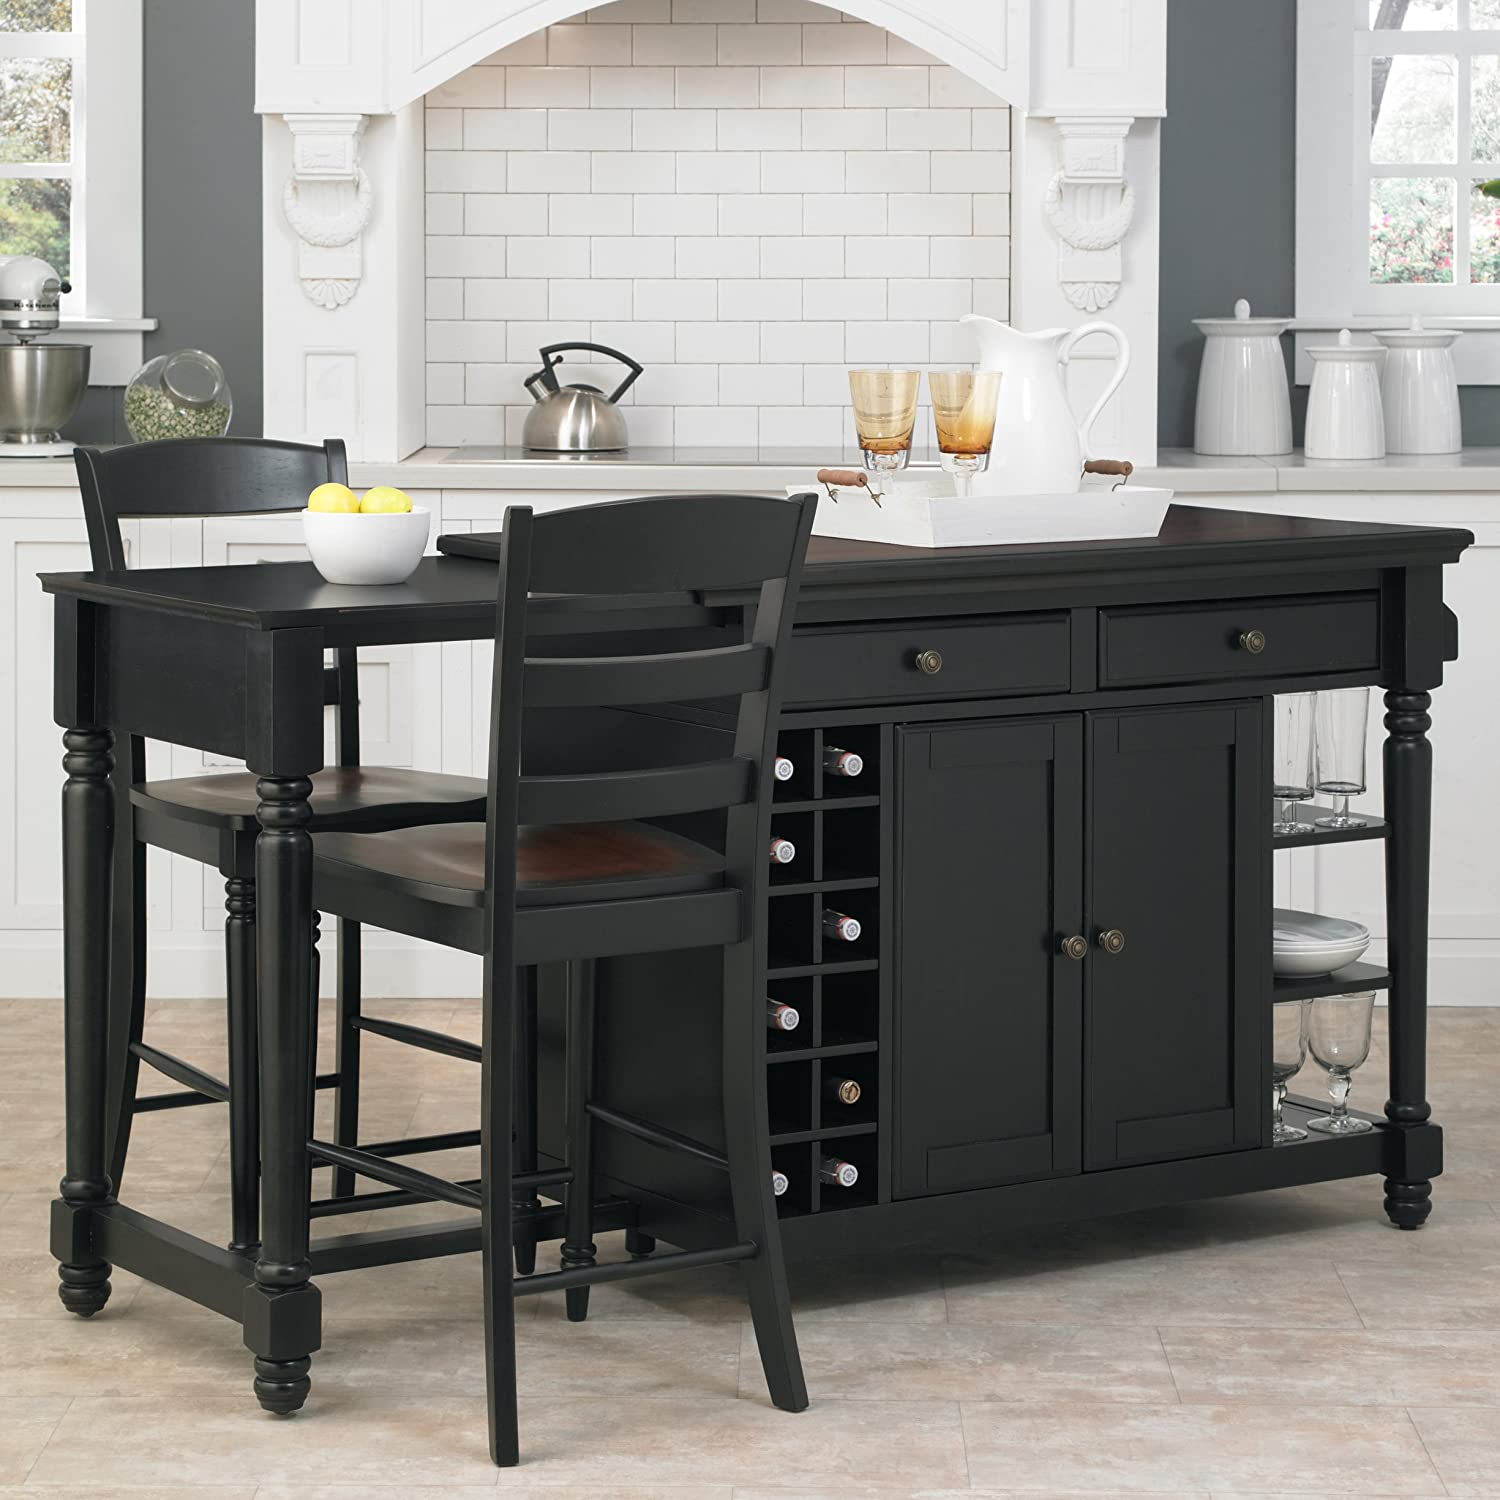 homestyle kitchen island homestyle kitchen island home styles